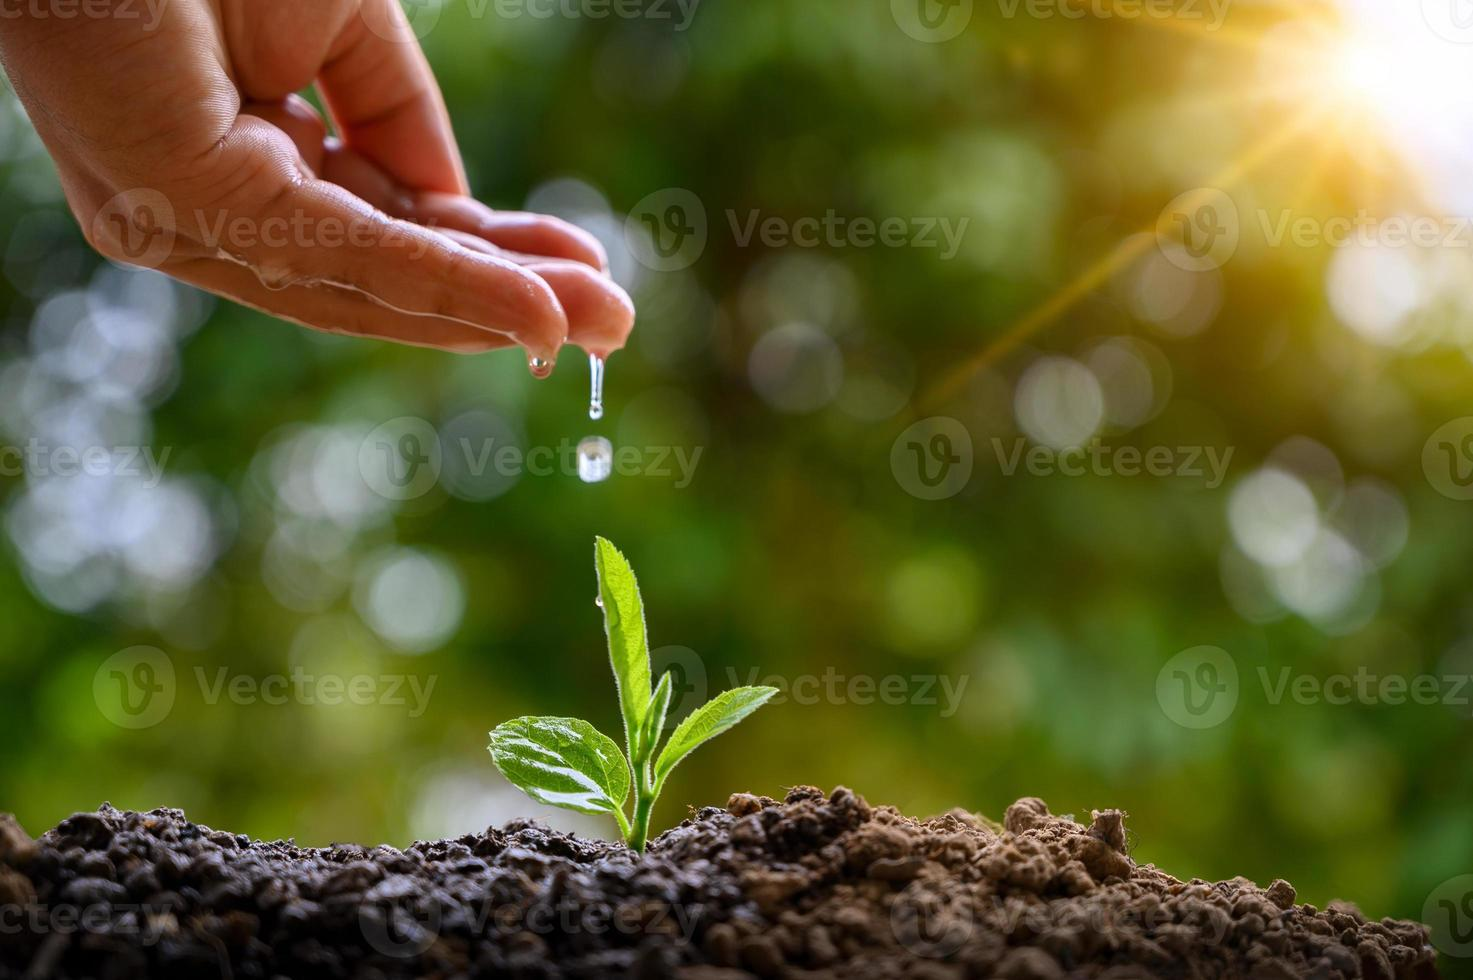 In the hands of trees growing seedlings. Bokeh green Background Female hand holding tree on nature field grass Forest conservation concept photo